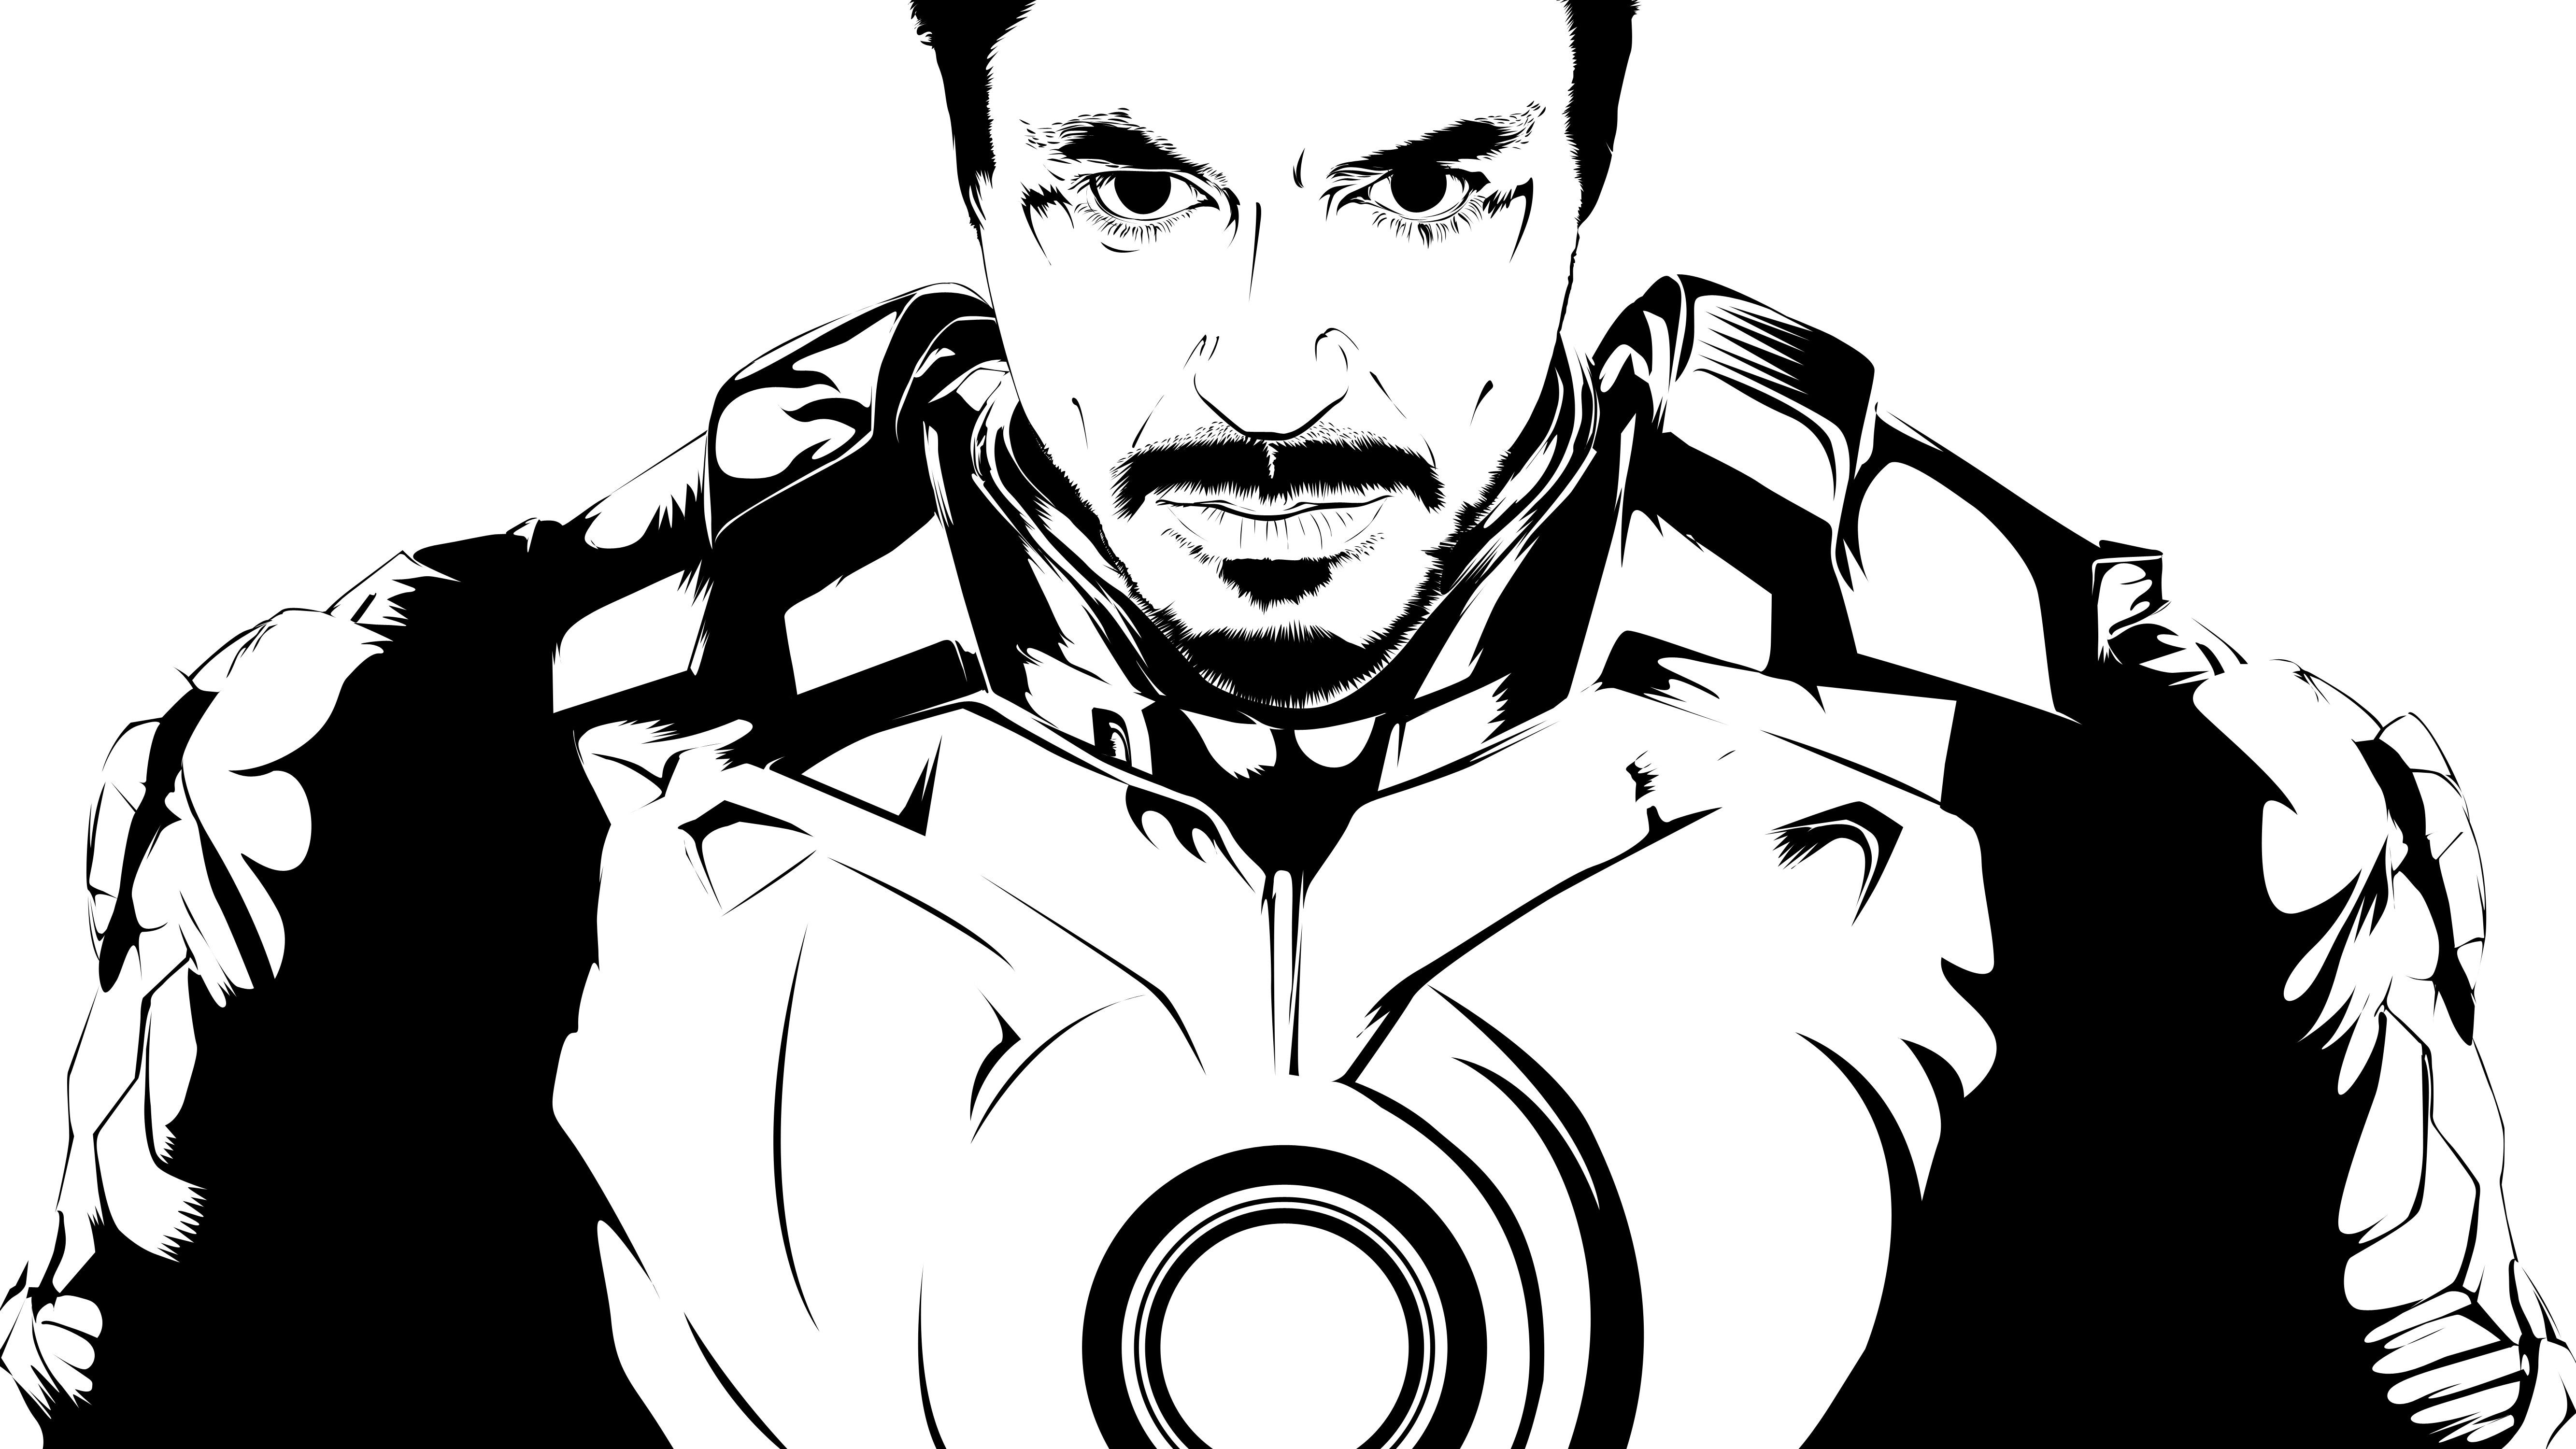 Pin By Andrea Perez On Vectores Iron Man Drawings Iron Man Black Line Art